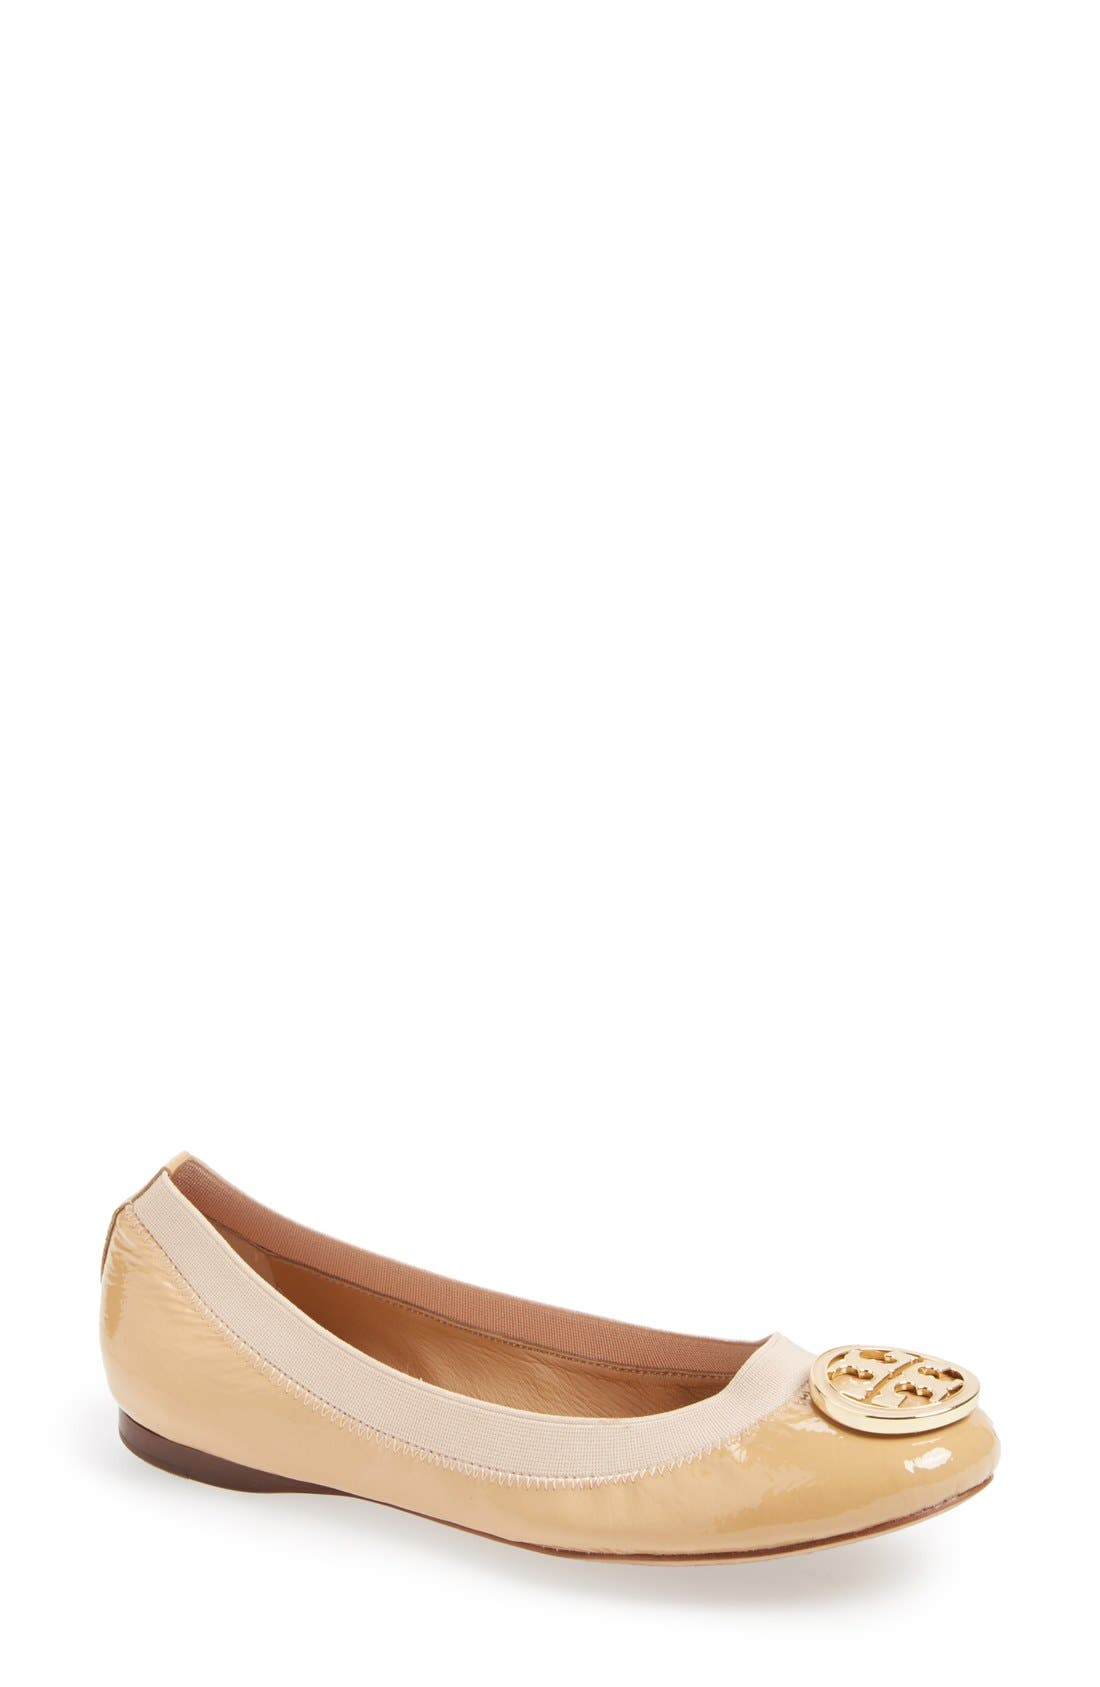 Alternate Image 1 Selected - Tory Burch 'Caroline' Ballerina Flat (Women)